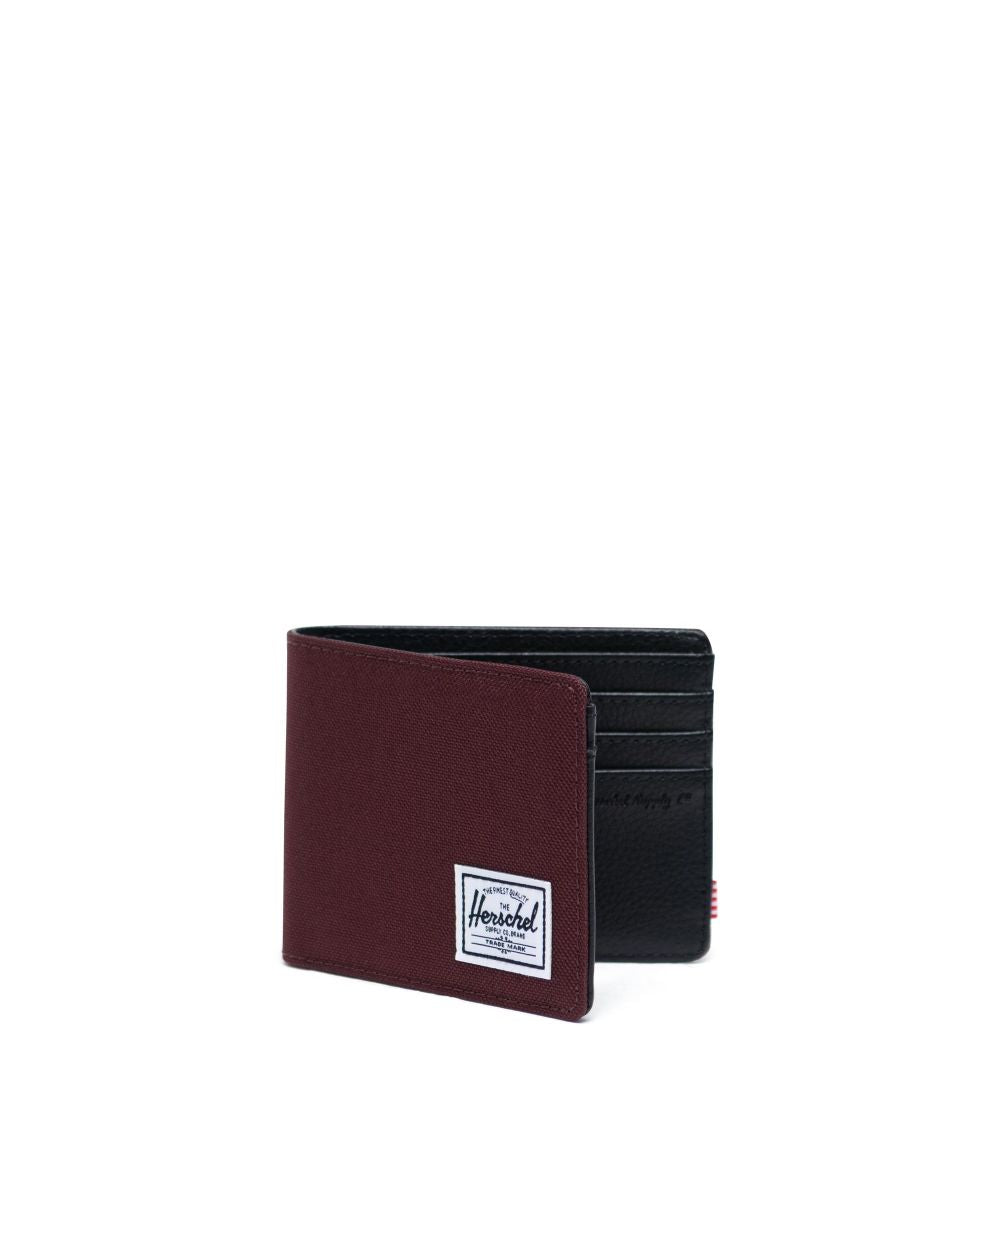 HANK WALLET - PLUM